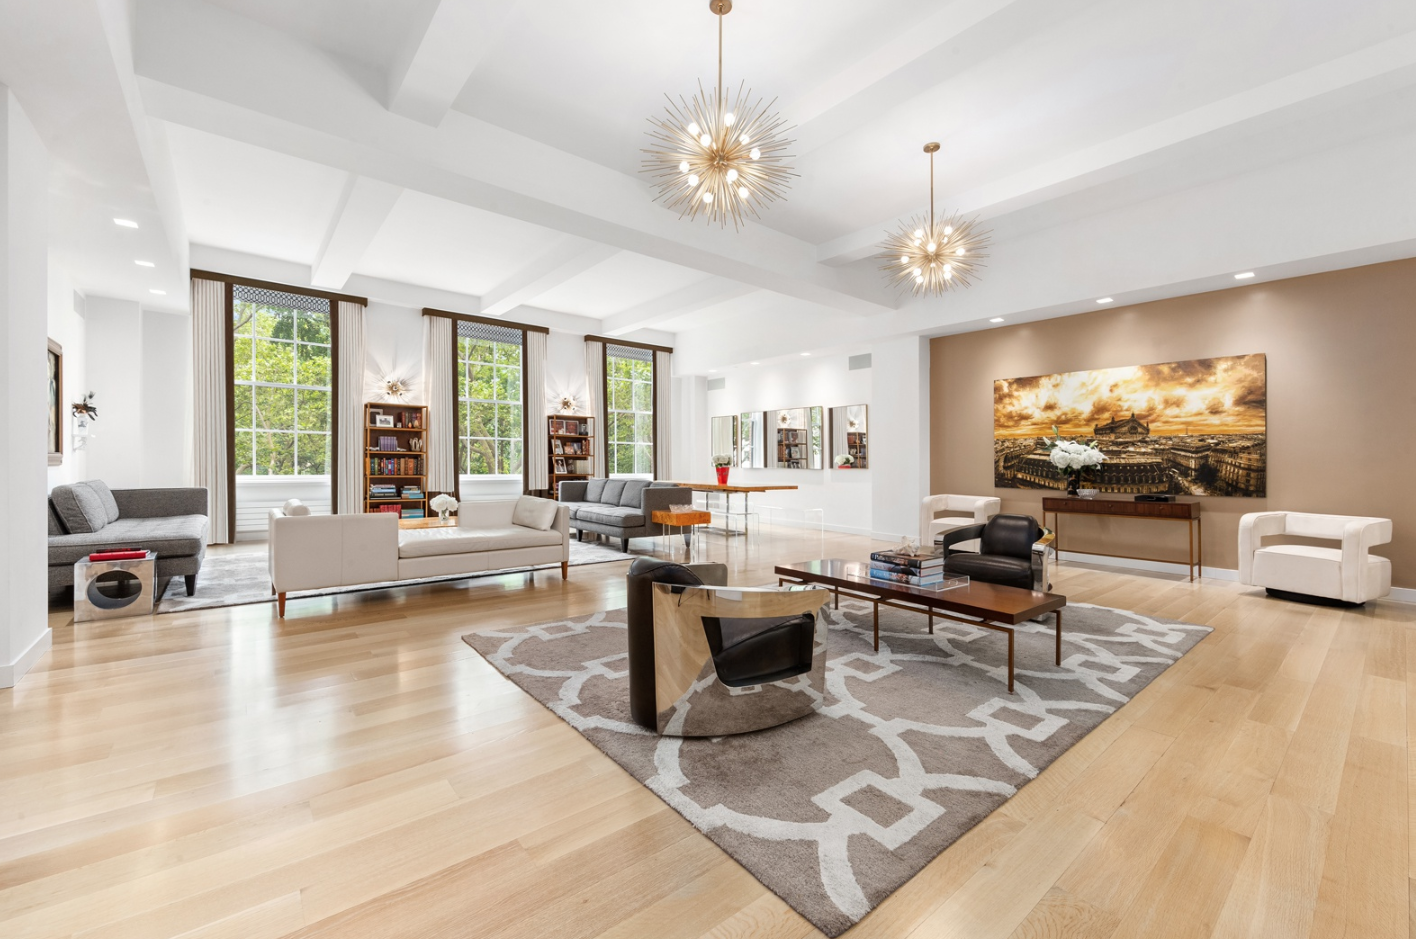 21 EAST 26TH STREET, 3 - $15,950,0004 Bedrooms5.5 Bathrooms4,967 SQFT